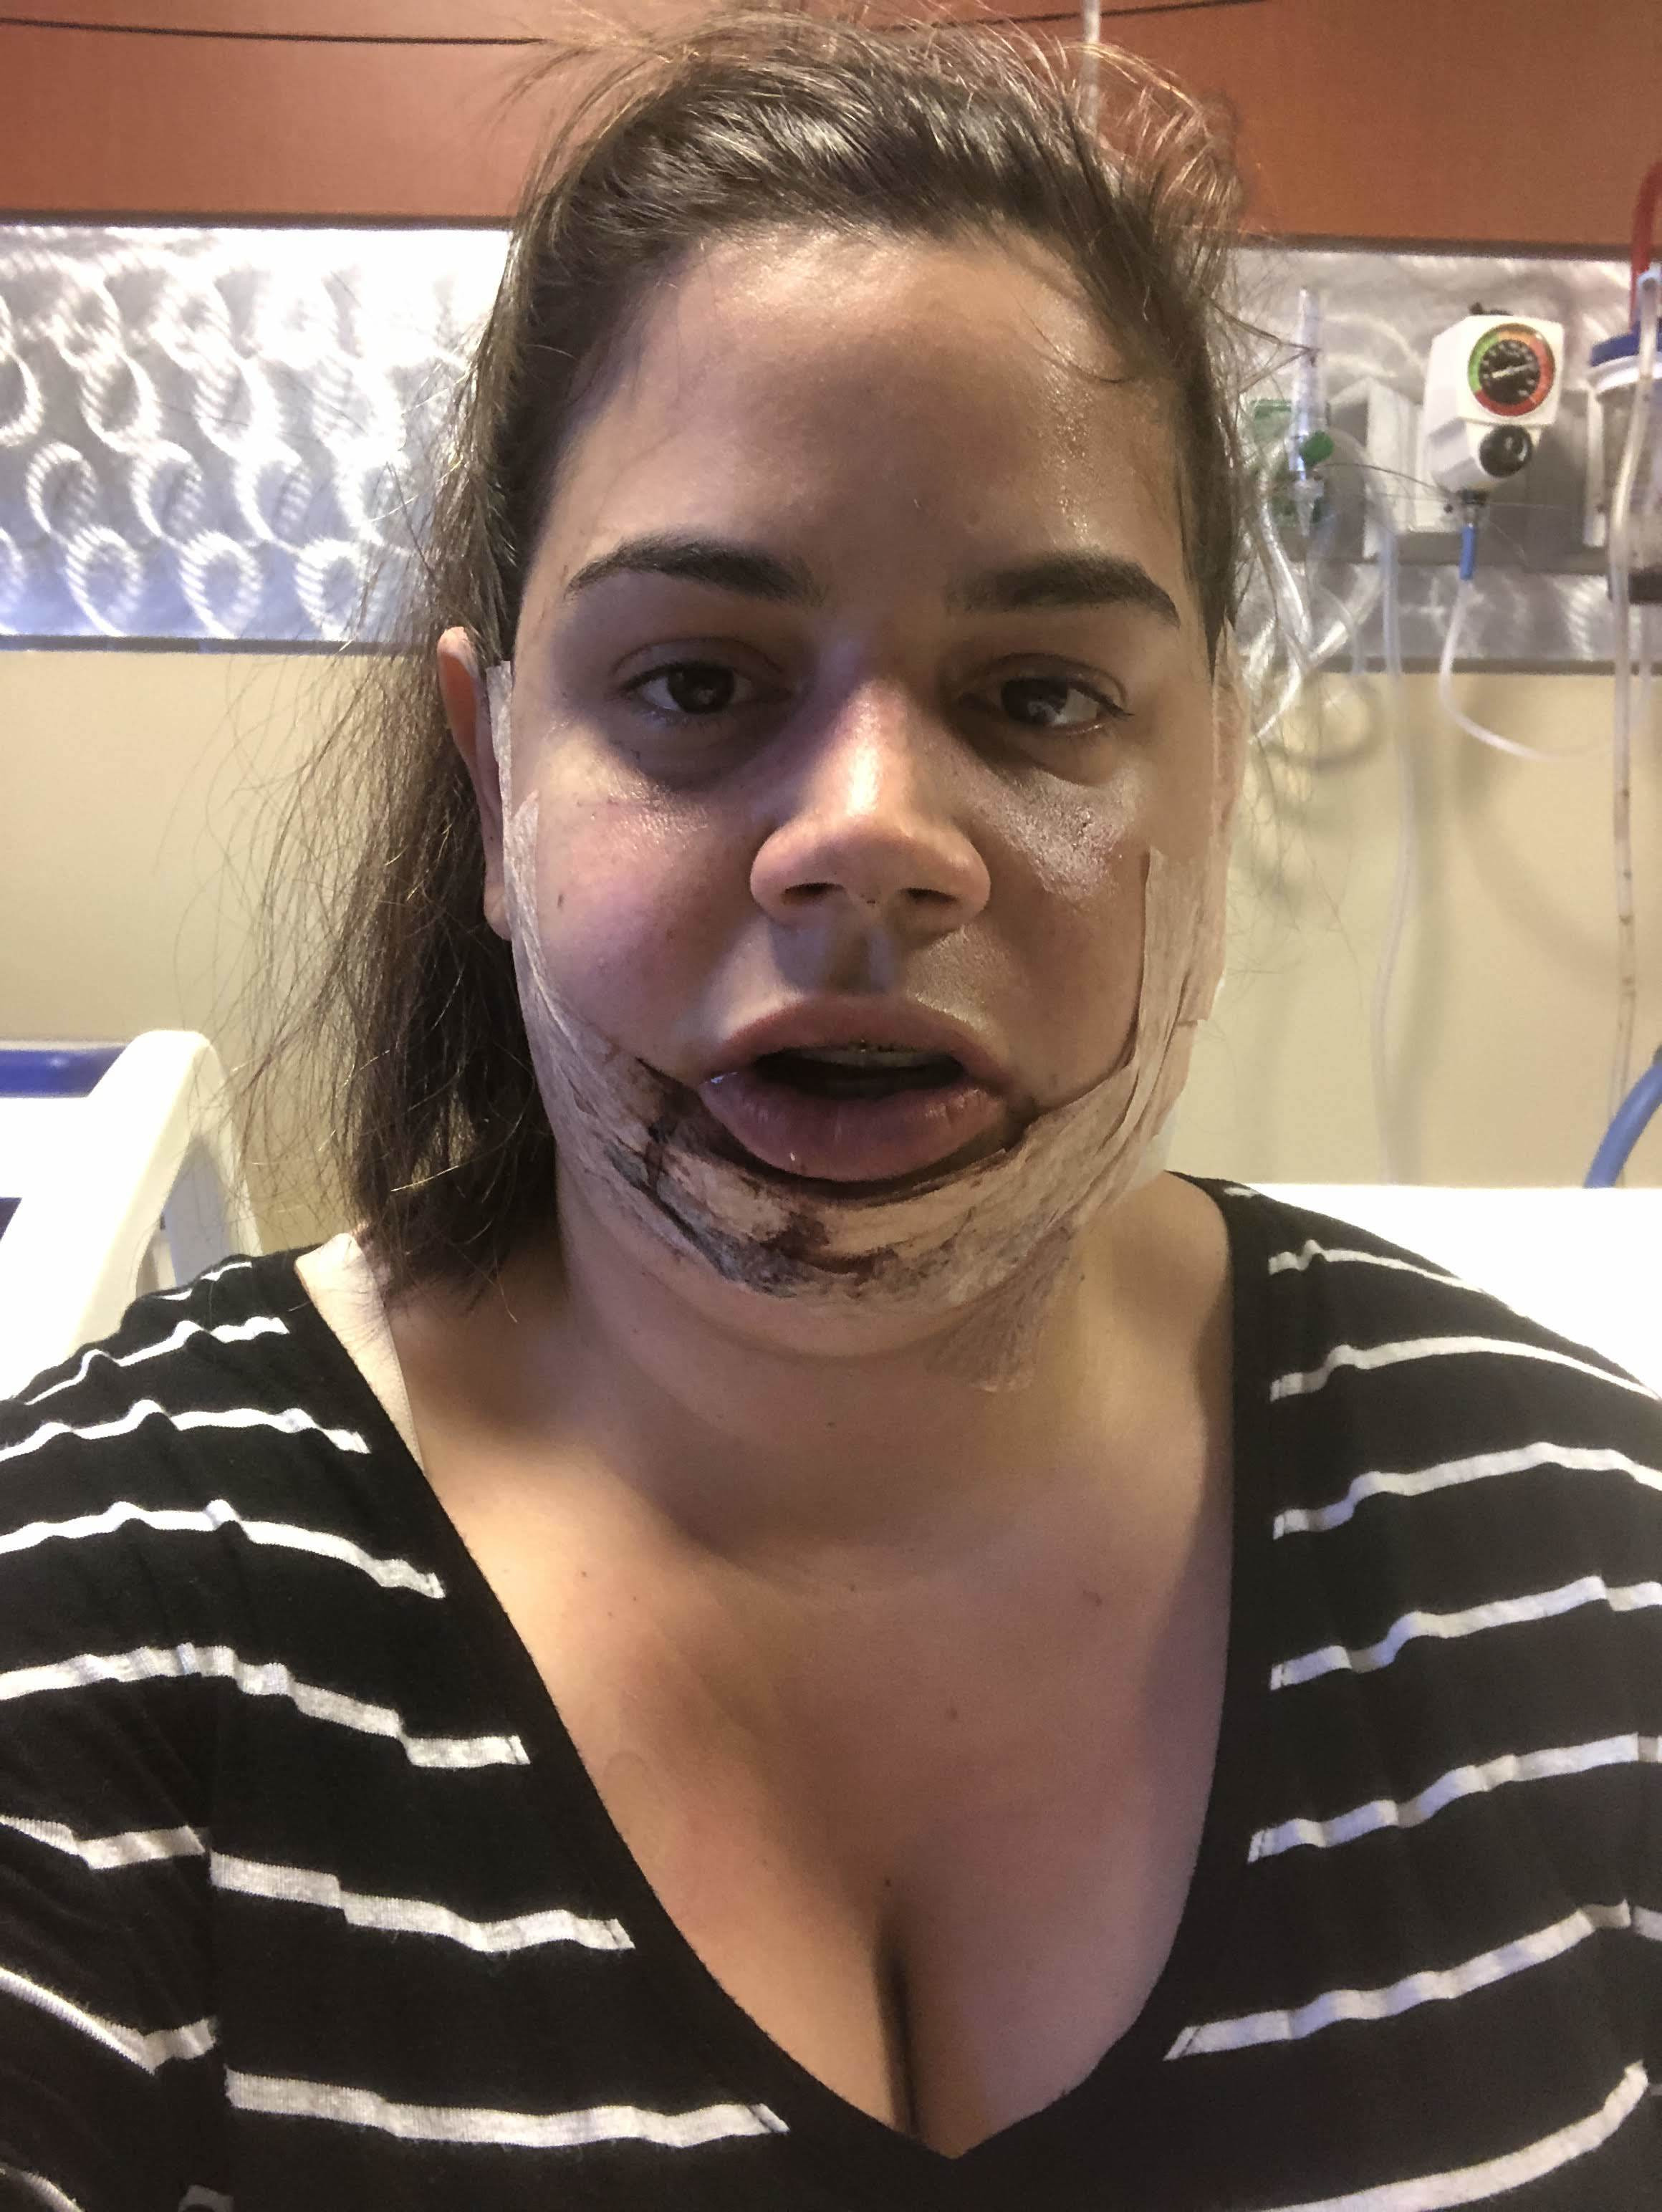 How I looked once the removed the ice pack. My face had so much glue on it.